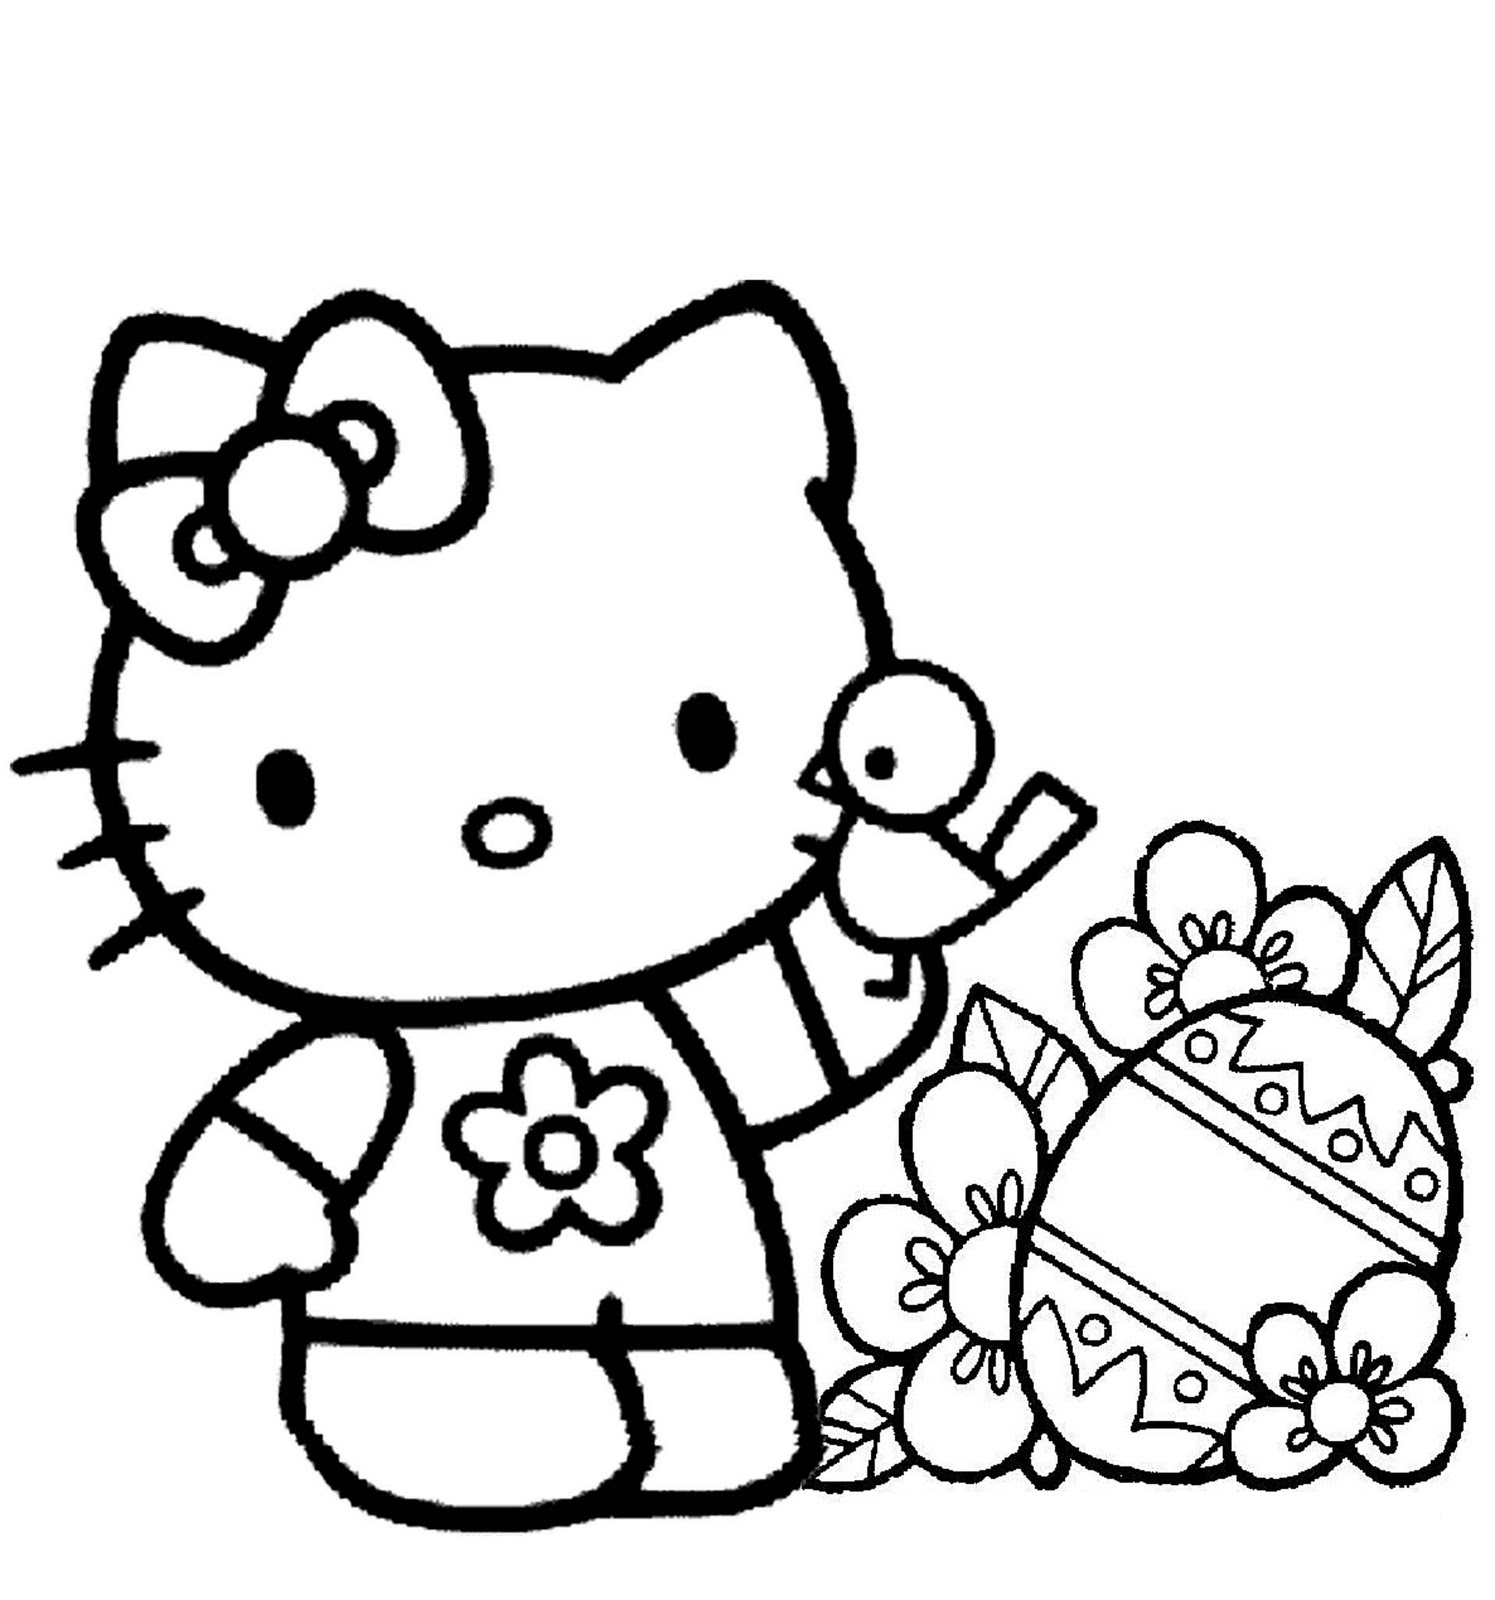 kids color pages - free printable hello kitty coloring pages for kids